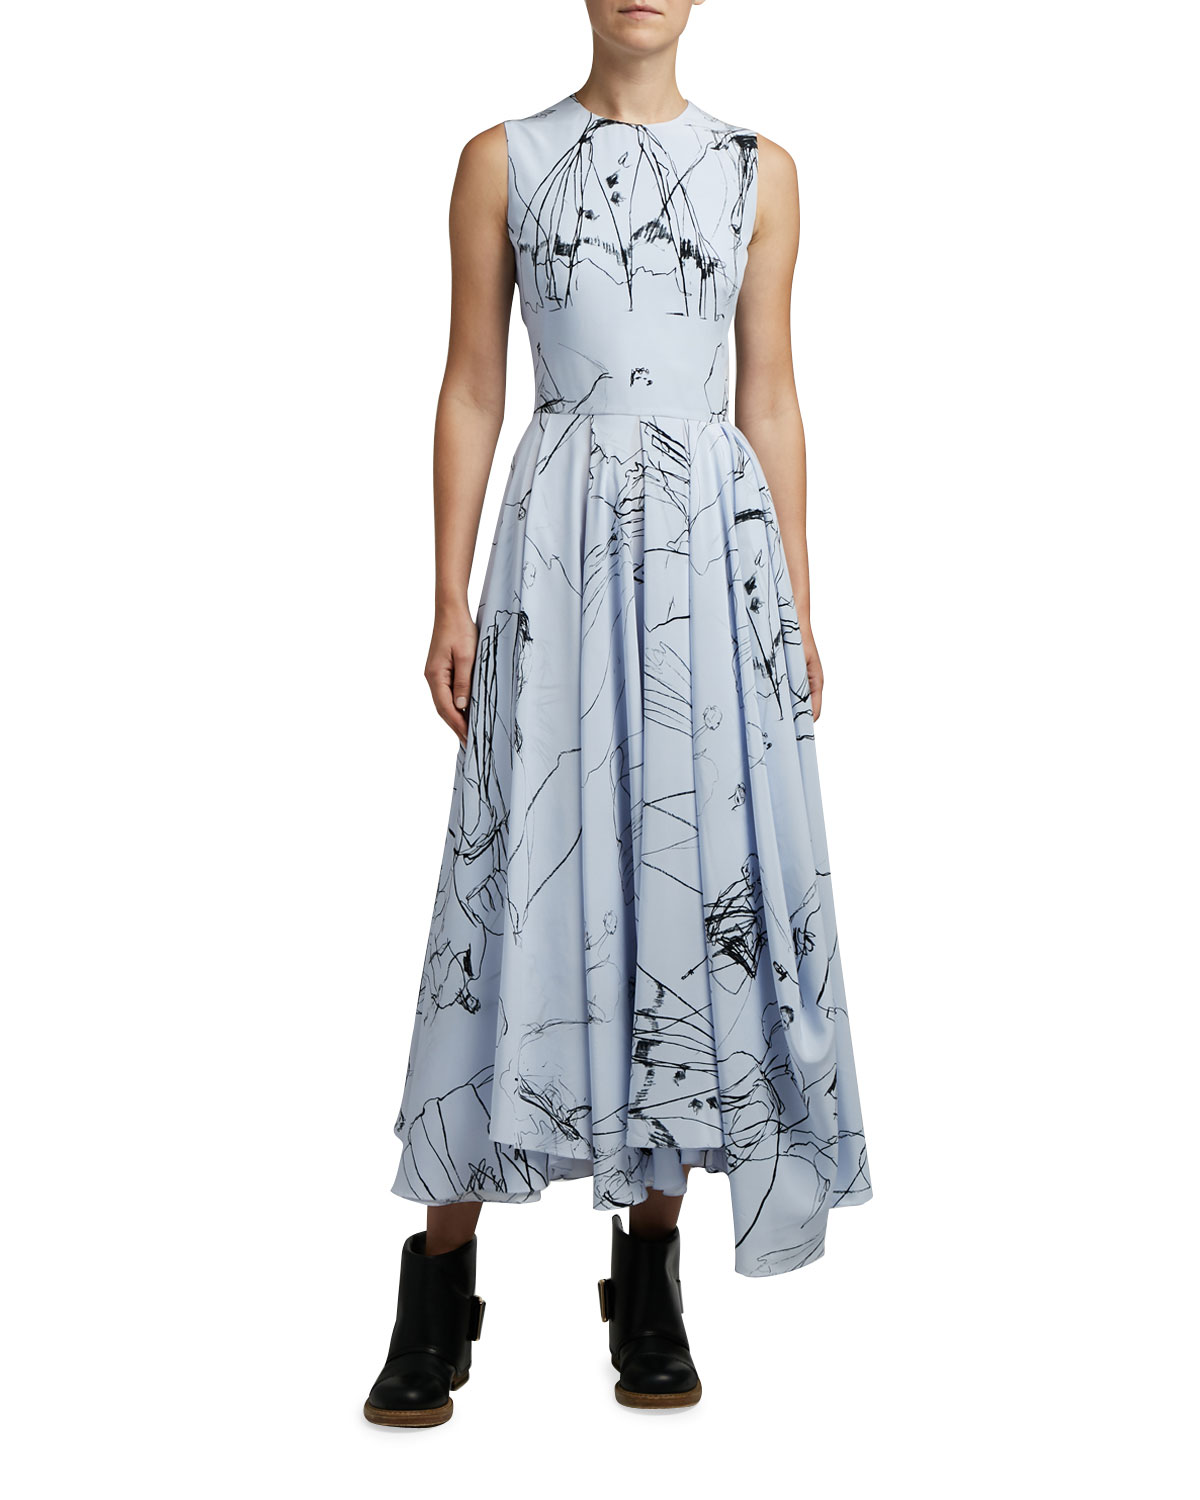 Alexander McQueen Dancing Girl Print Silk Dress